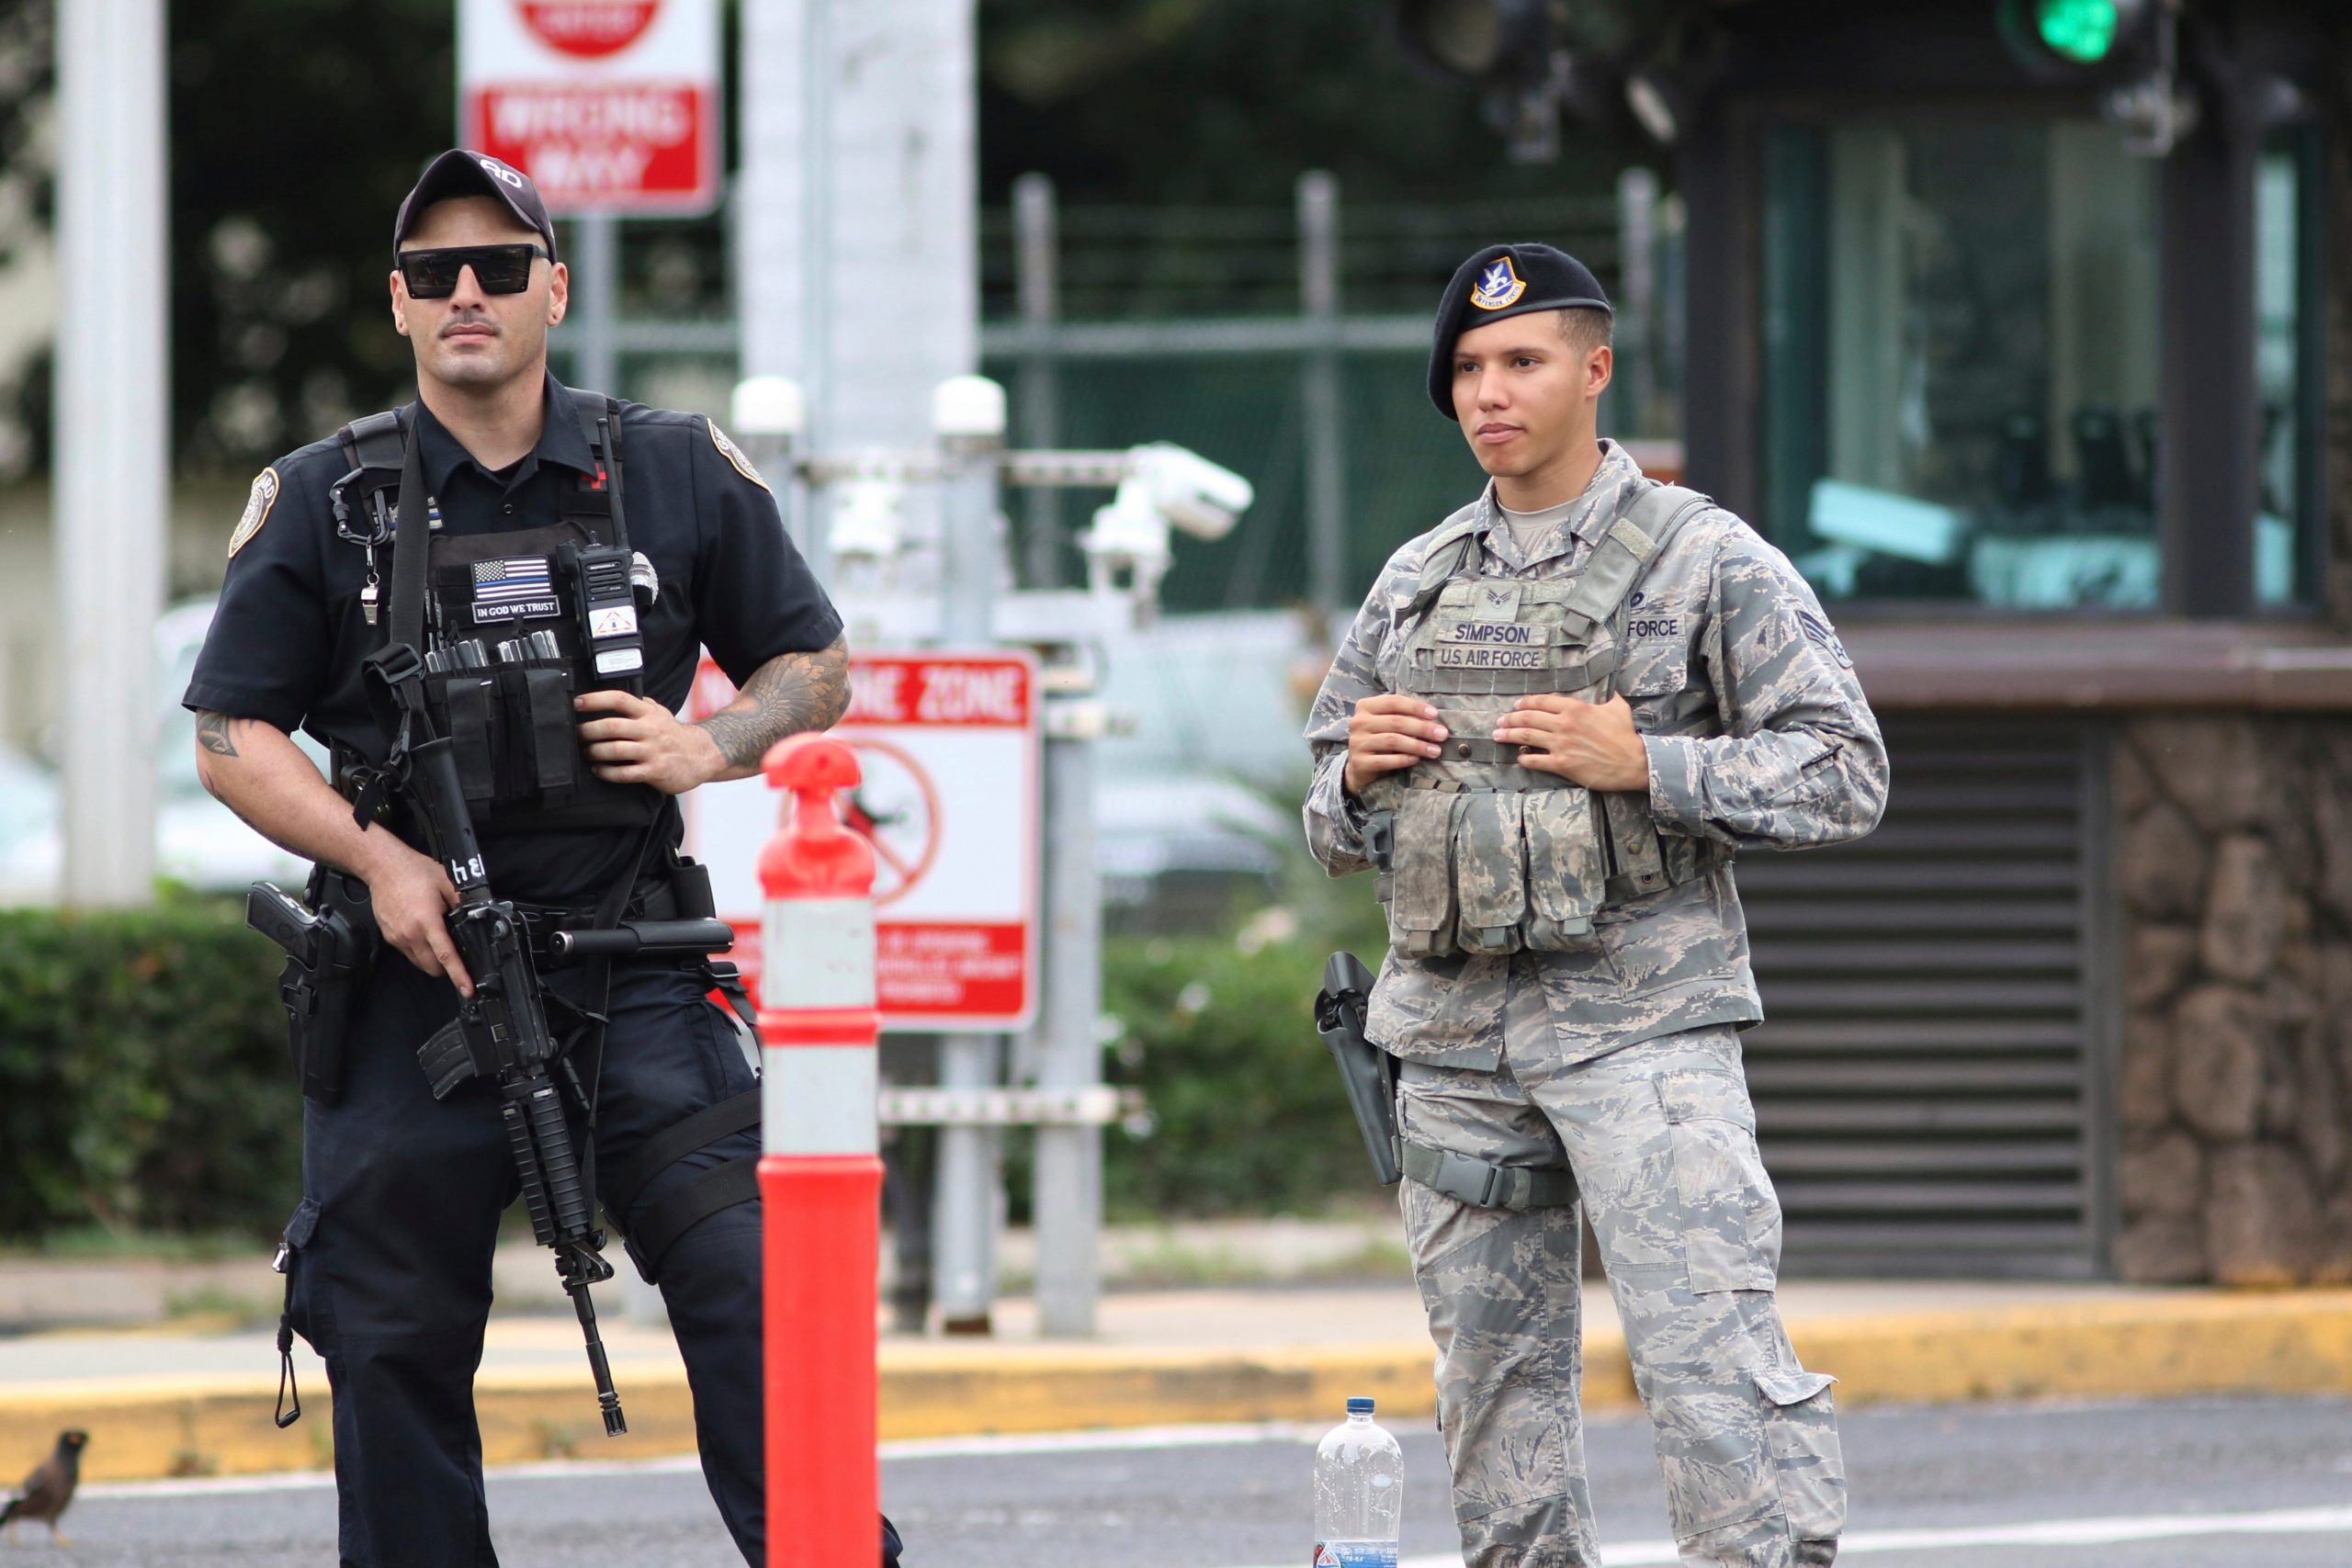 At least two killed in a shooting in a US military base in Hawaii